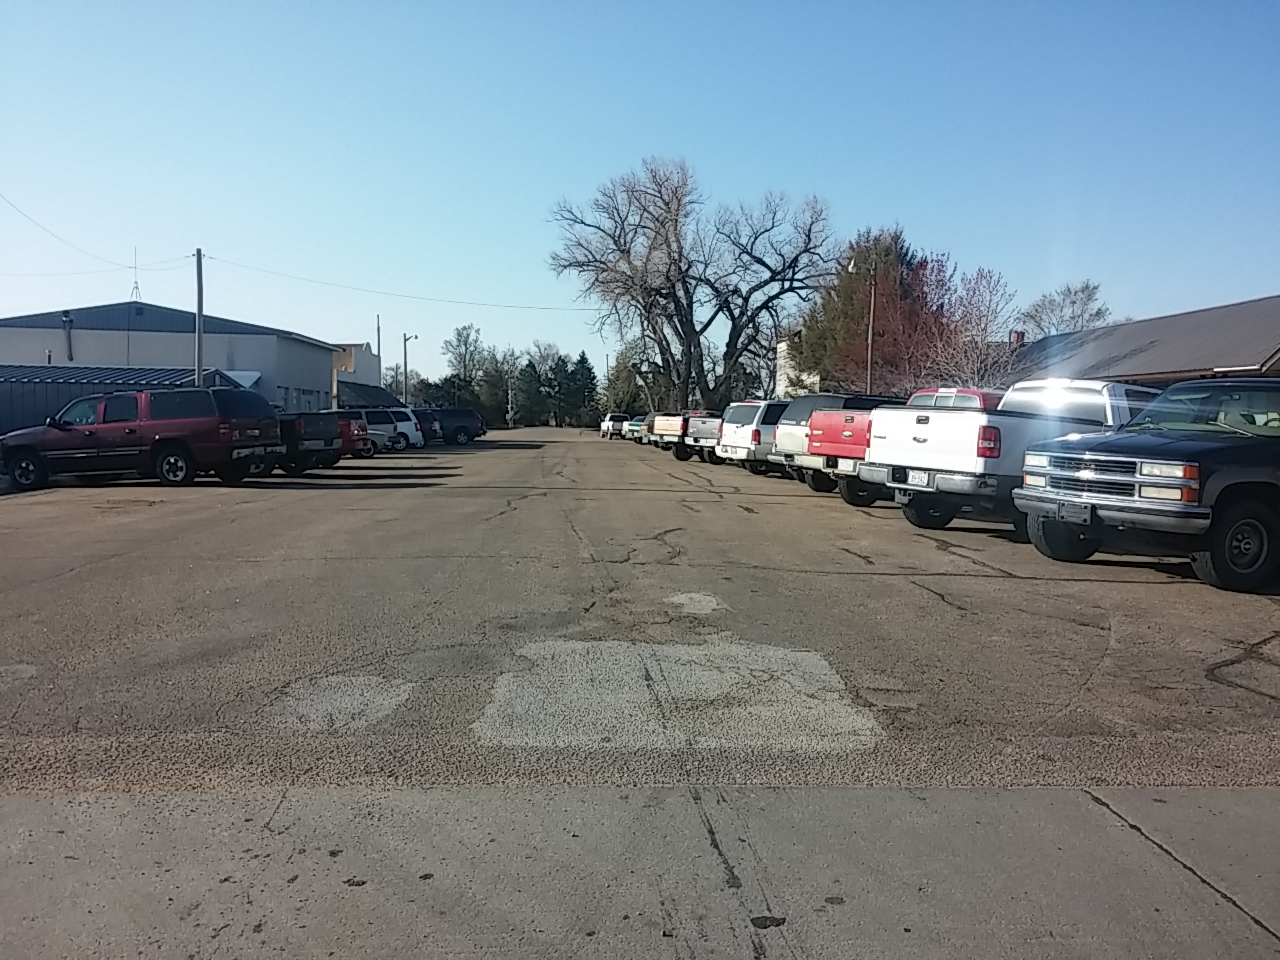 Shows a row of cars parked downtown for a pancake feed